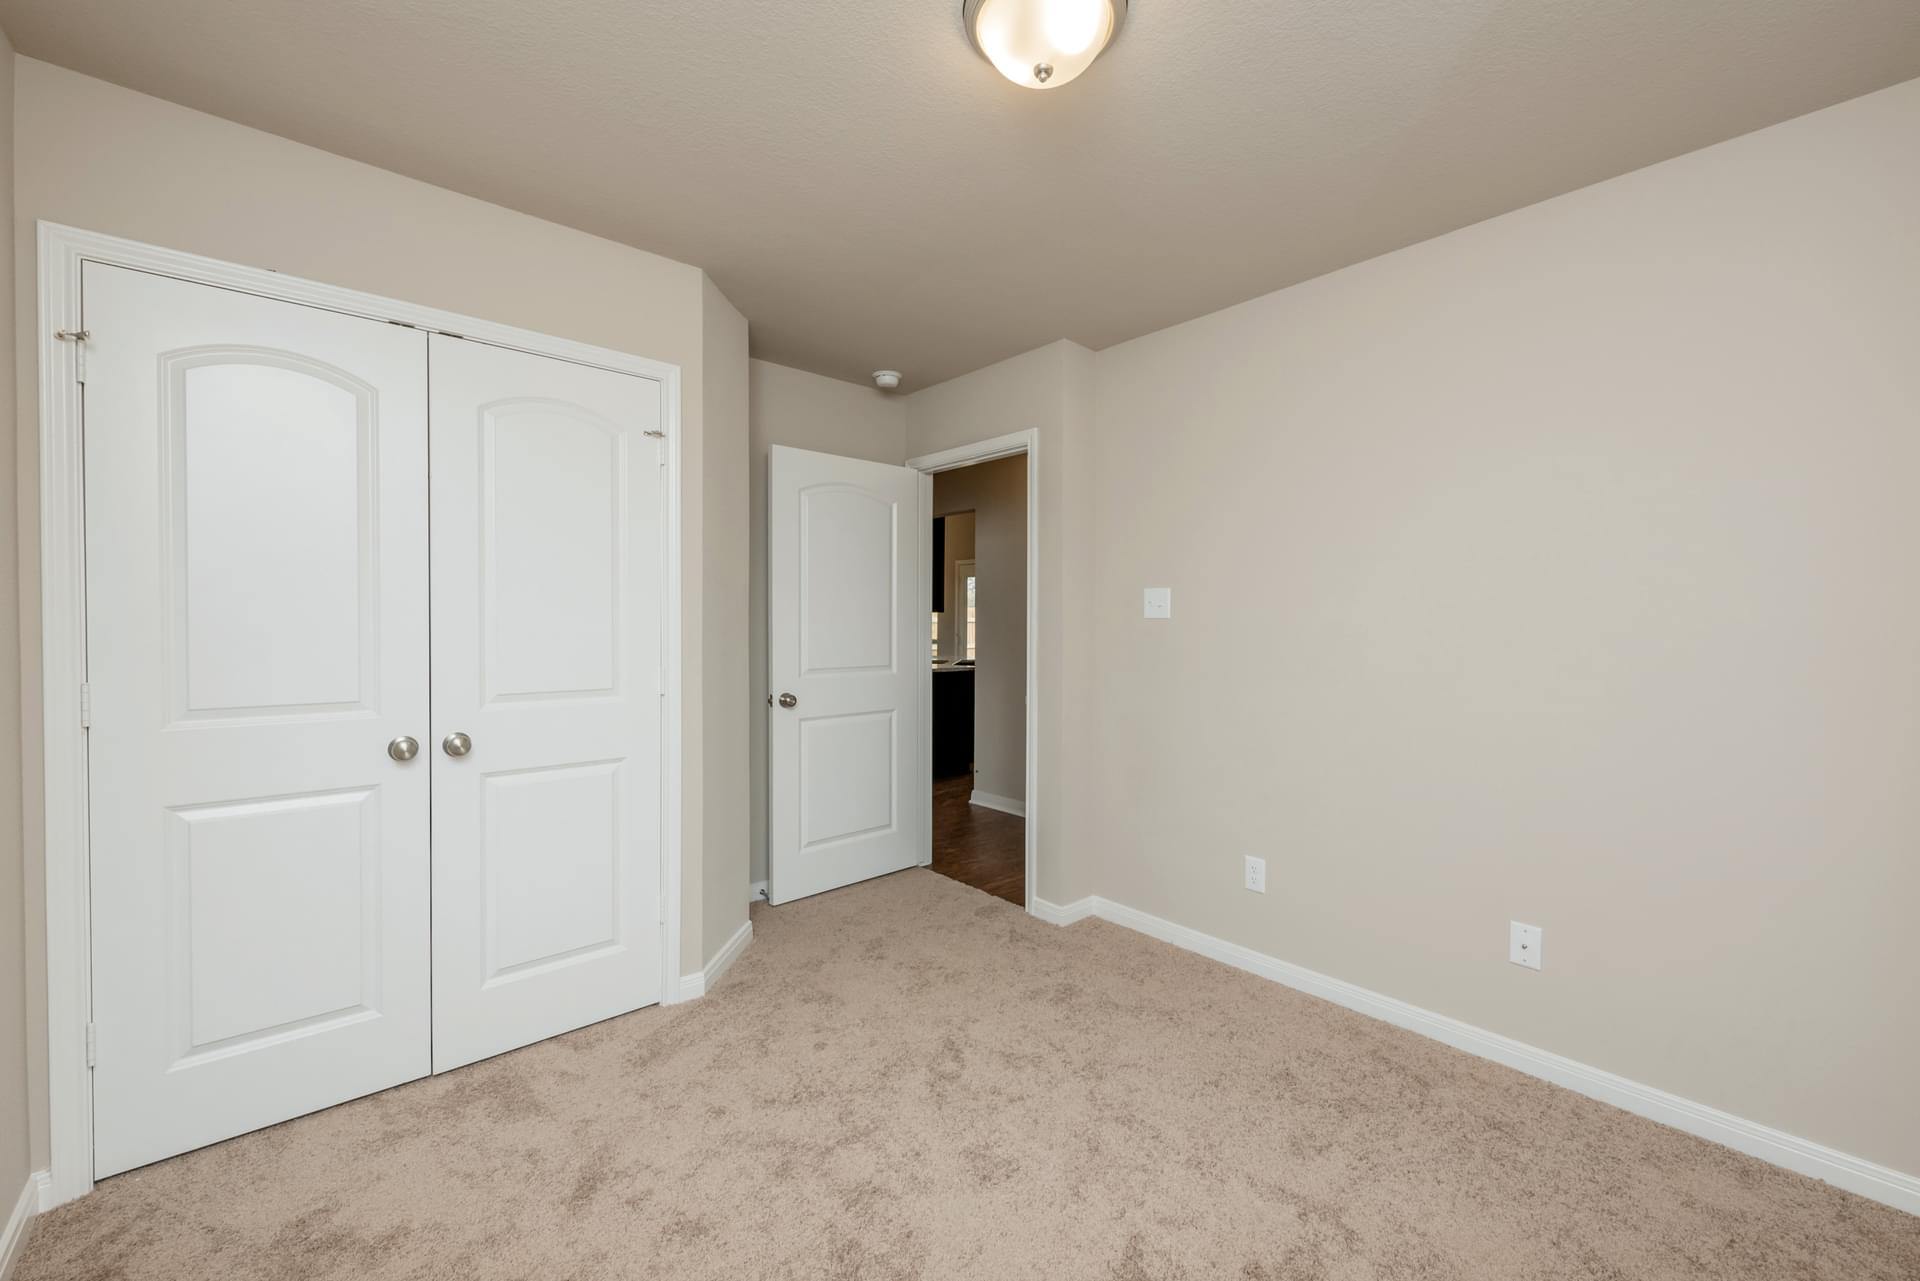 S-1262 Home with 3 Bedrooms